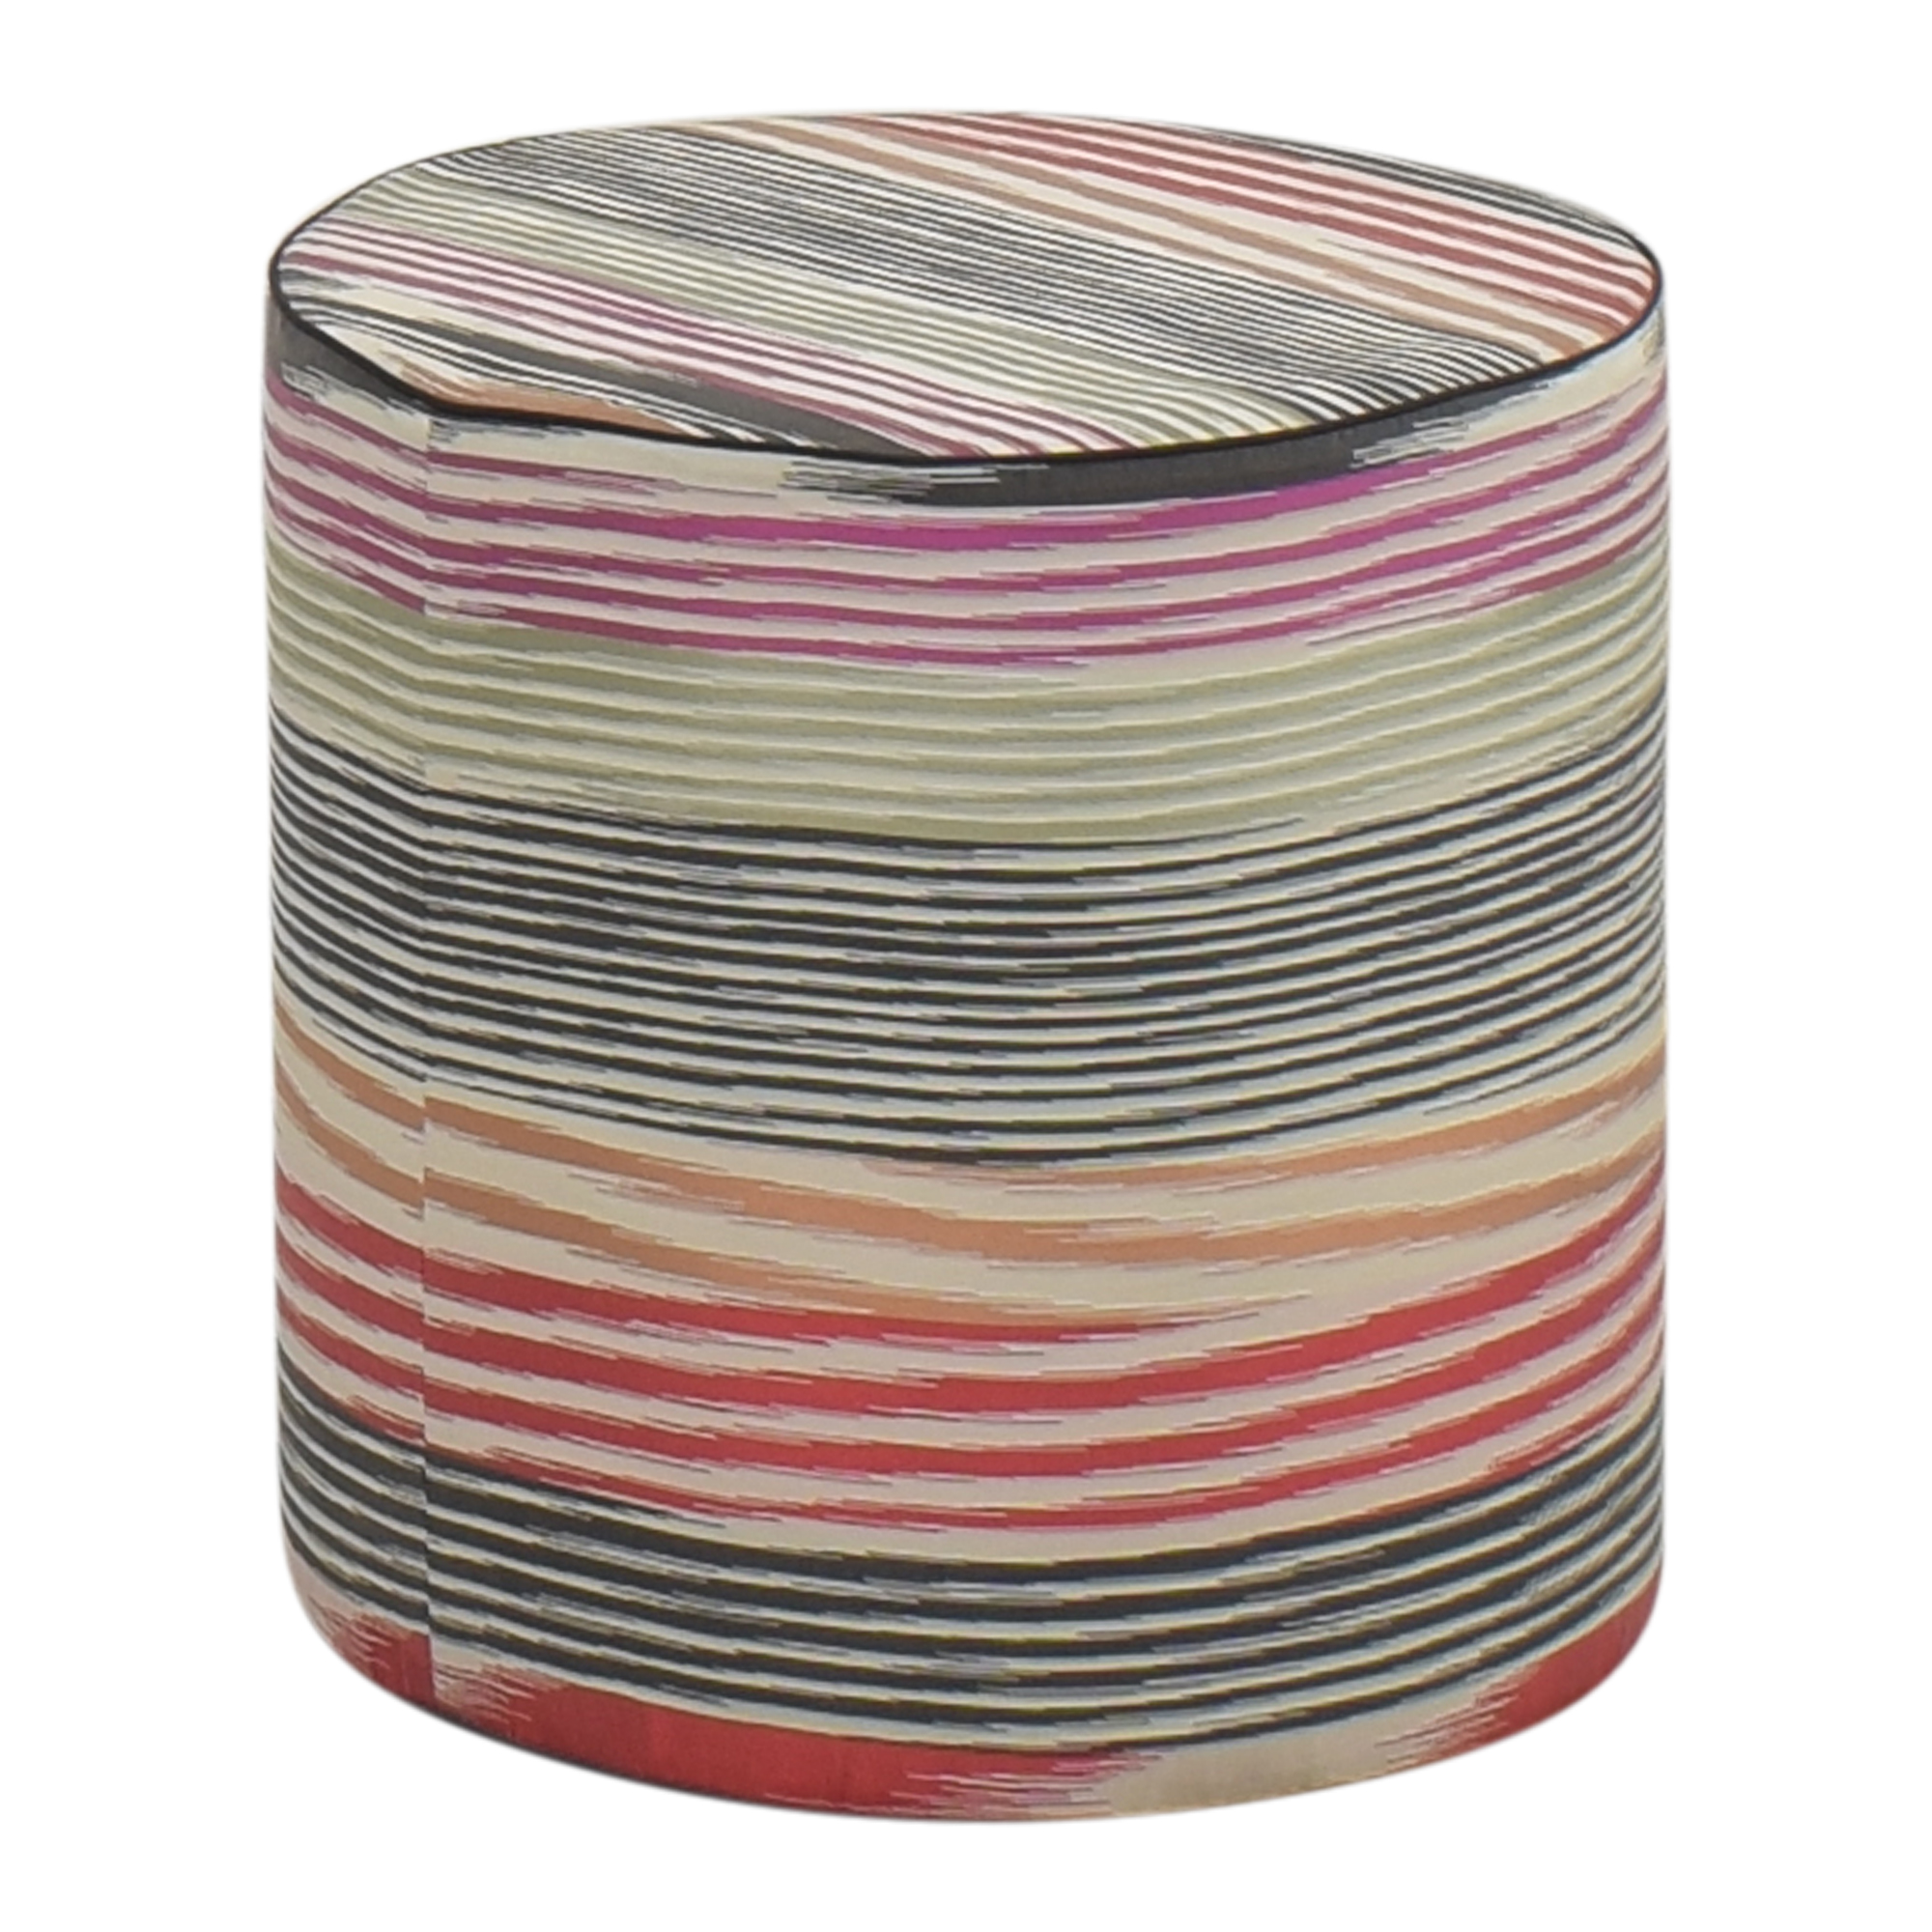 Missoni Missoni Home Cylinder Pouf discount